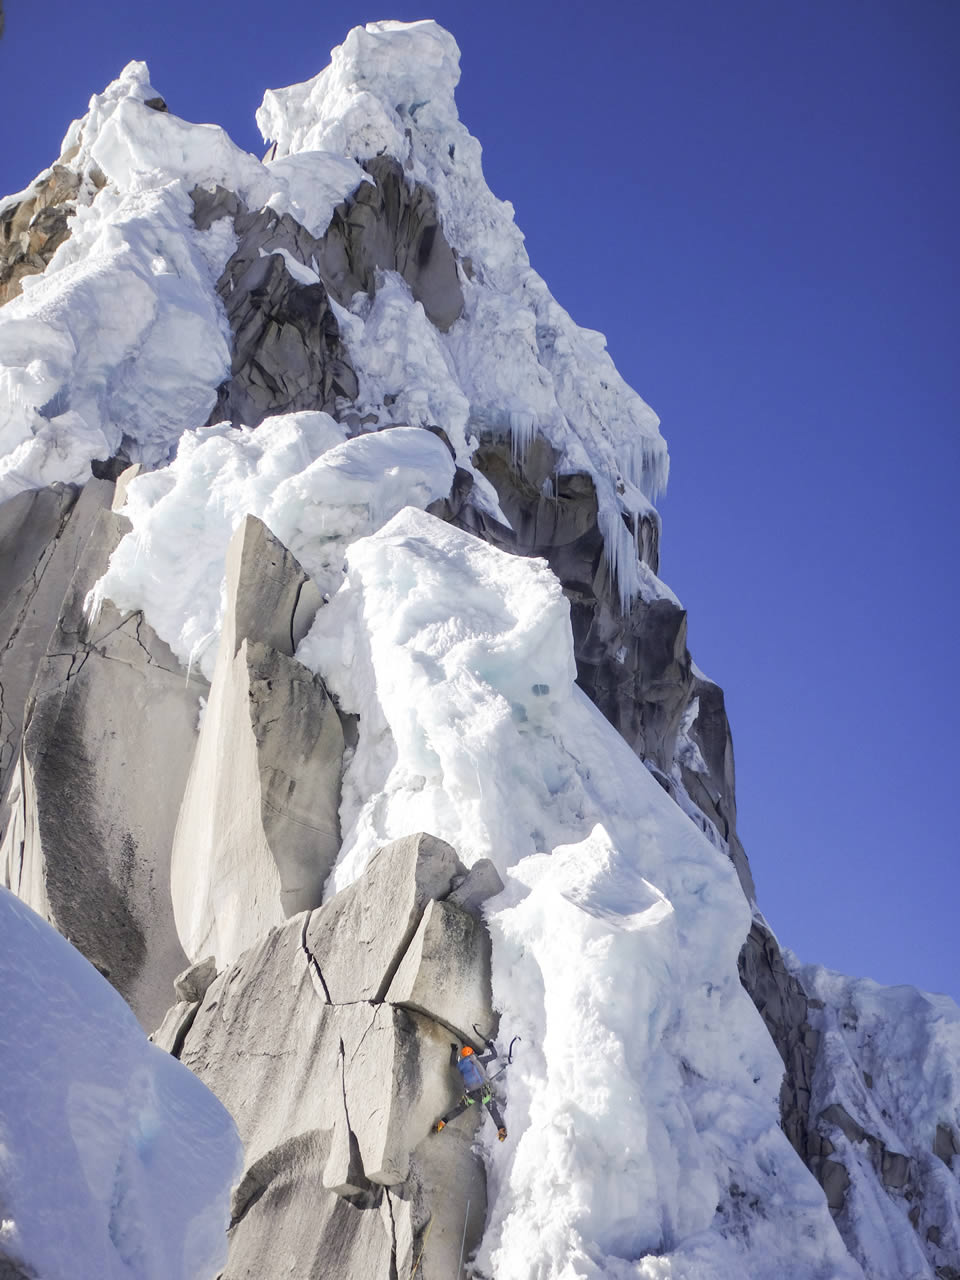 Rose Pearson part-way up the West Ridge on the second attempt. [Photo] Alastair McDowell